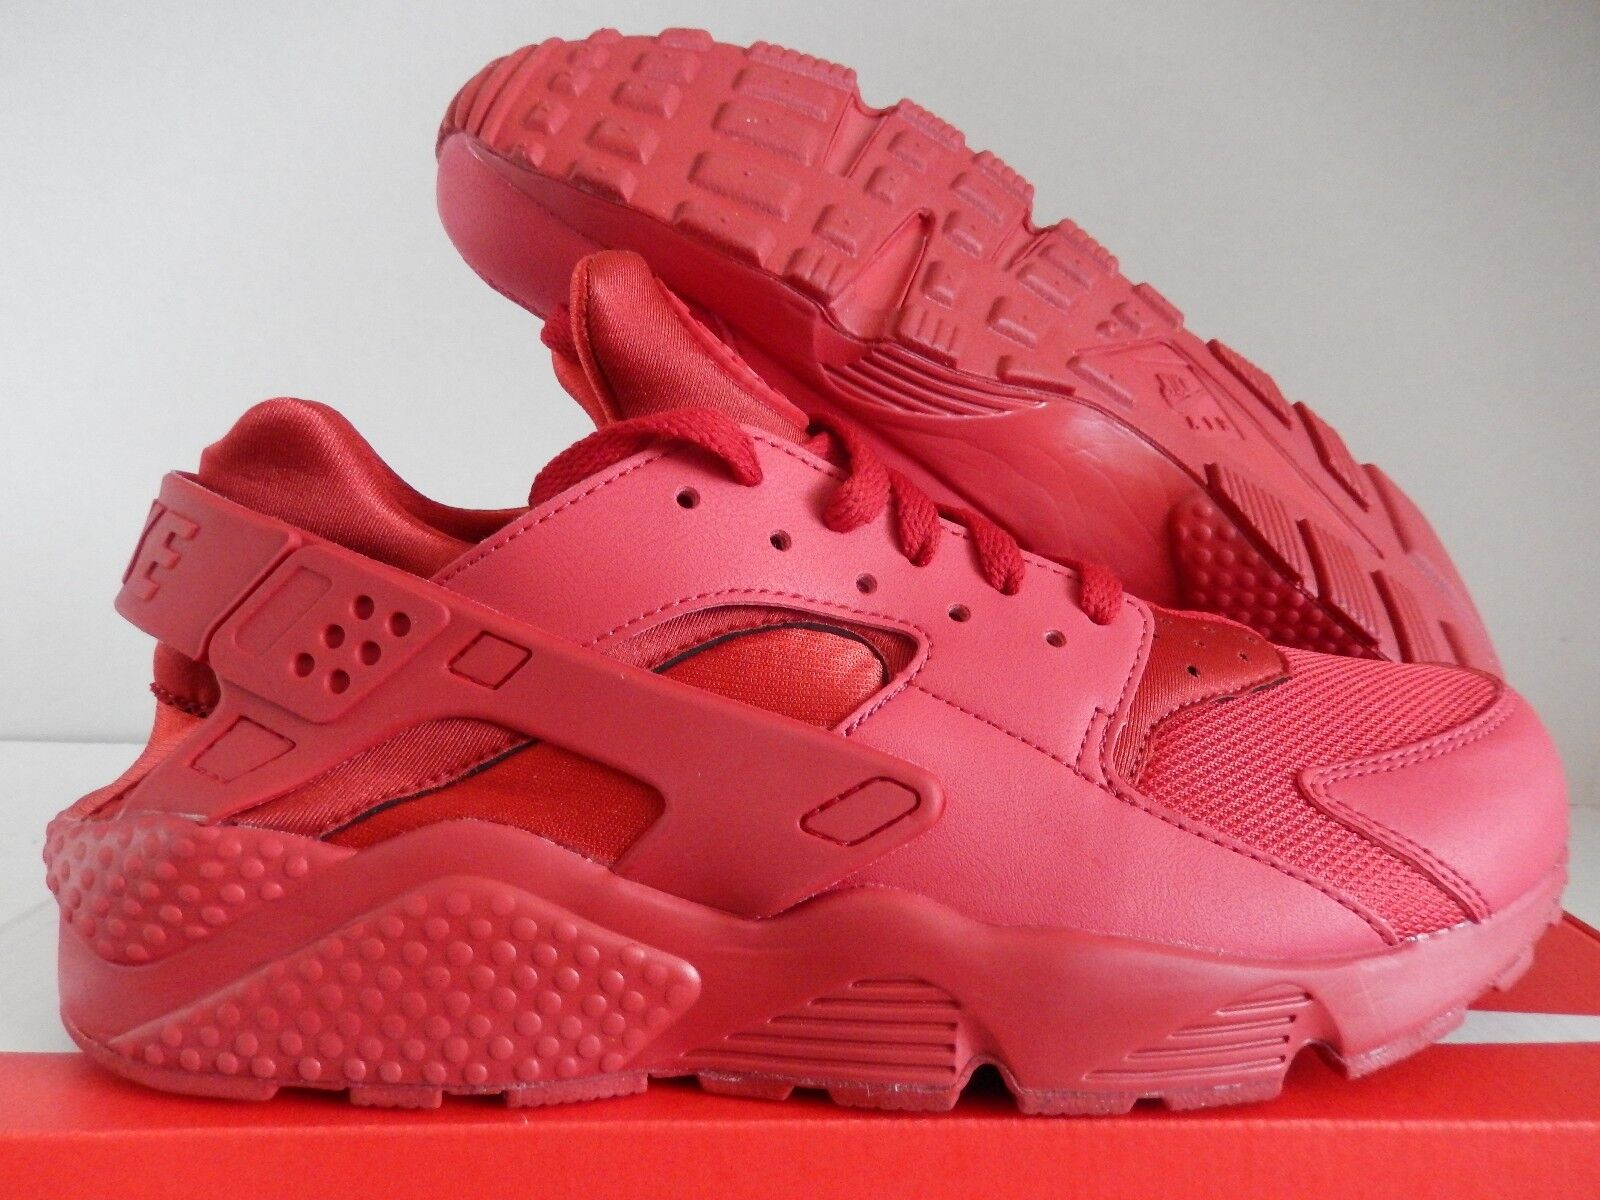 Red 10 Air October Sz Huarache Rouge Nike 5 q4XSIw4P